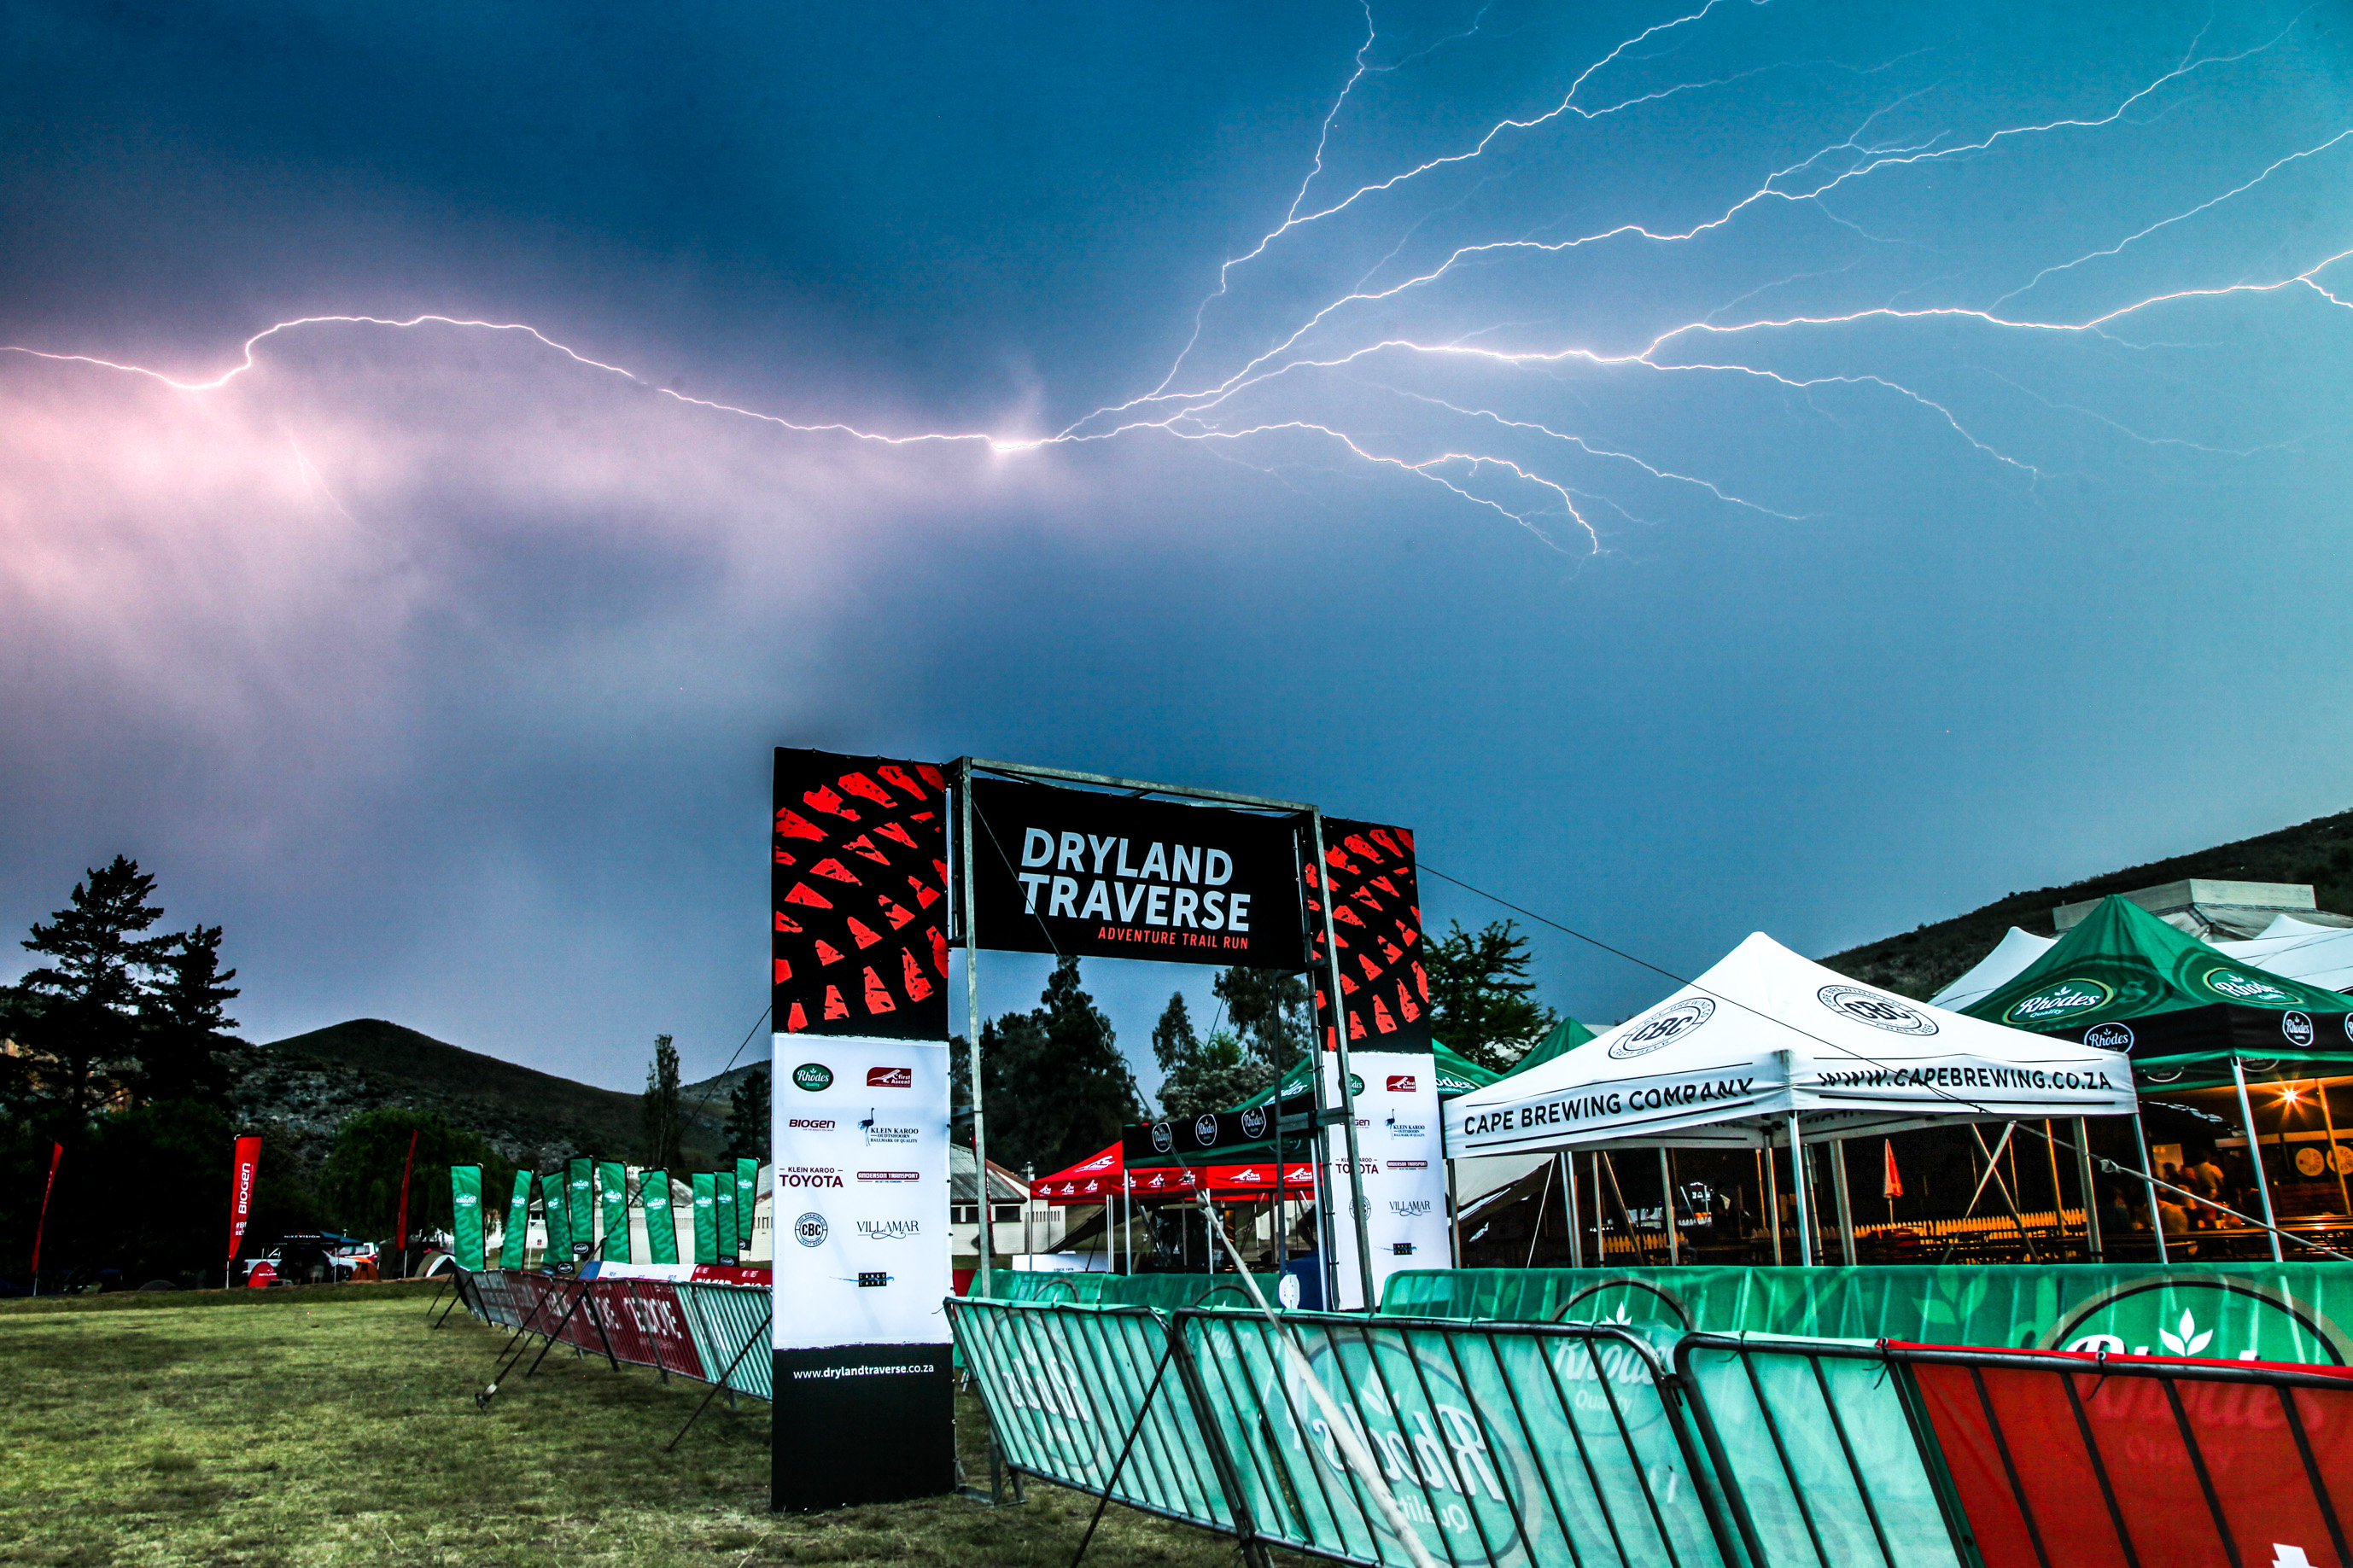 A thunderstorm broke on Thursday evening which dramatically cooled the sweltering atmosphere at the Dryland Traverse. Photo by Oakpics.com.